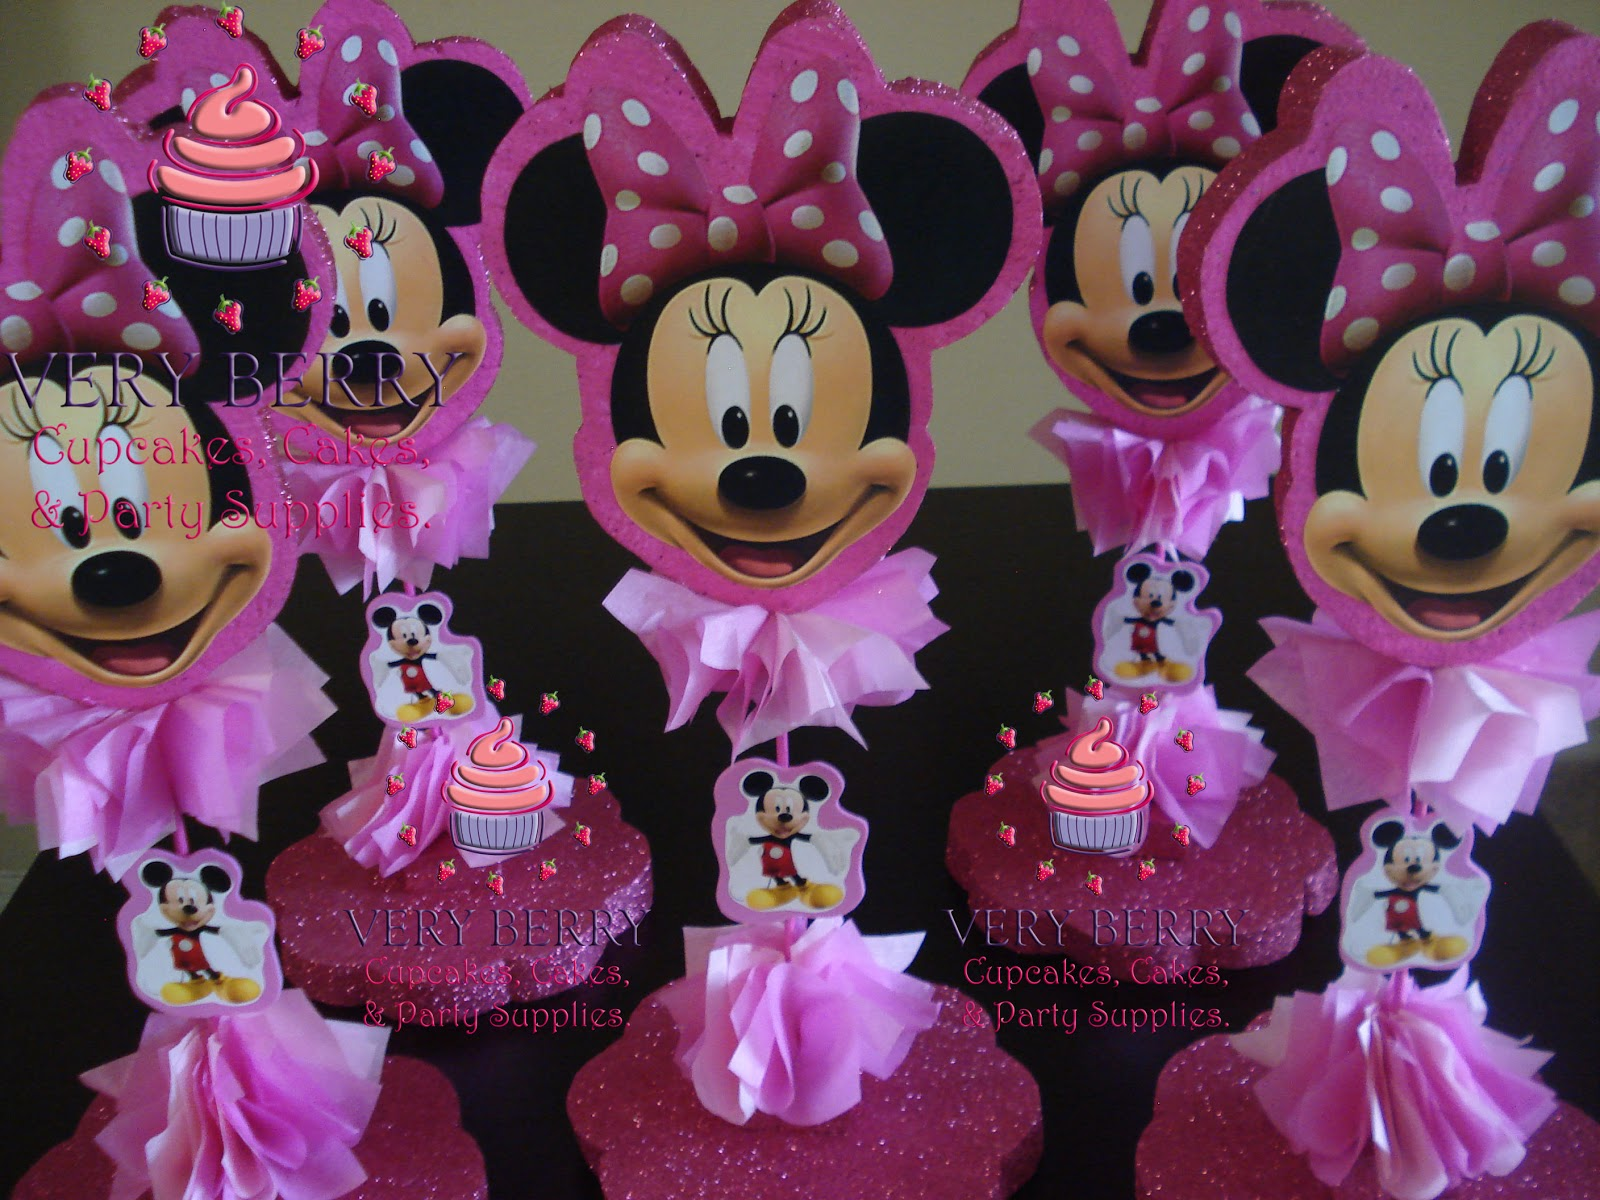 Baby minnie mouse decorations 28 images baby minnie for Baby minnie mouse decoration ideas